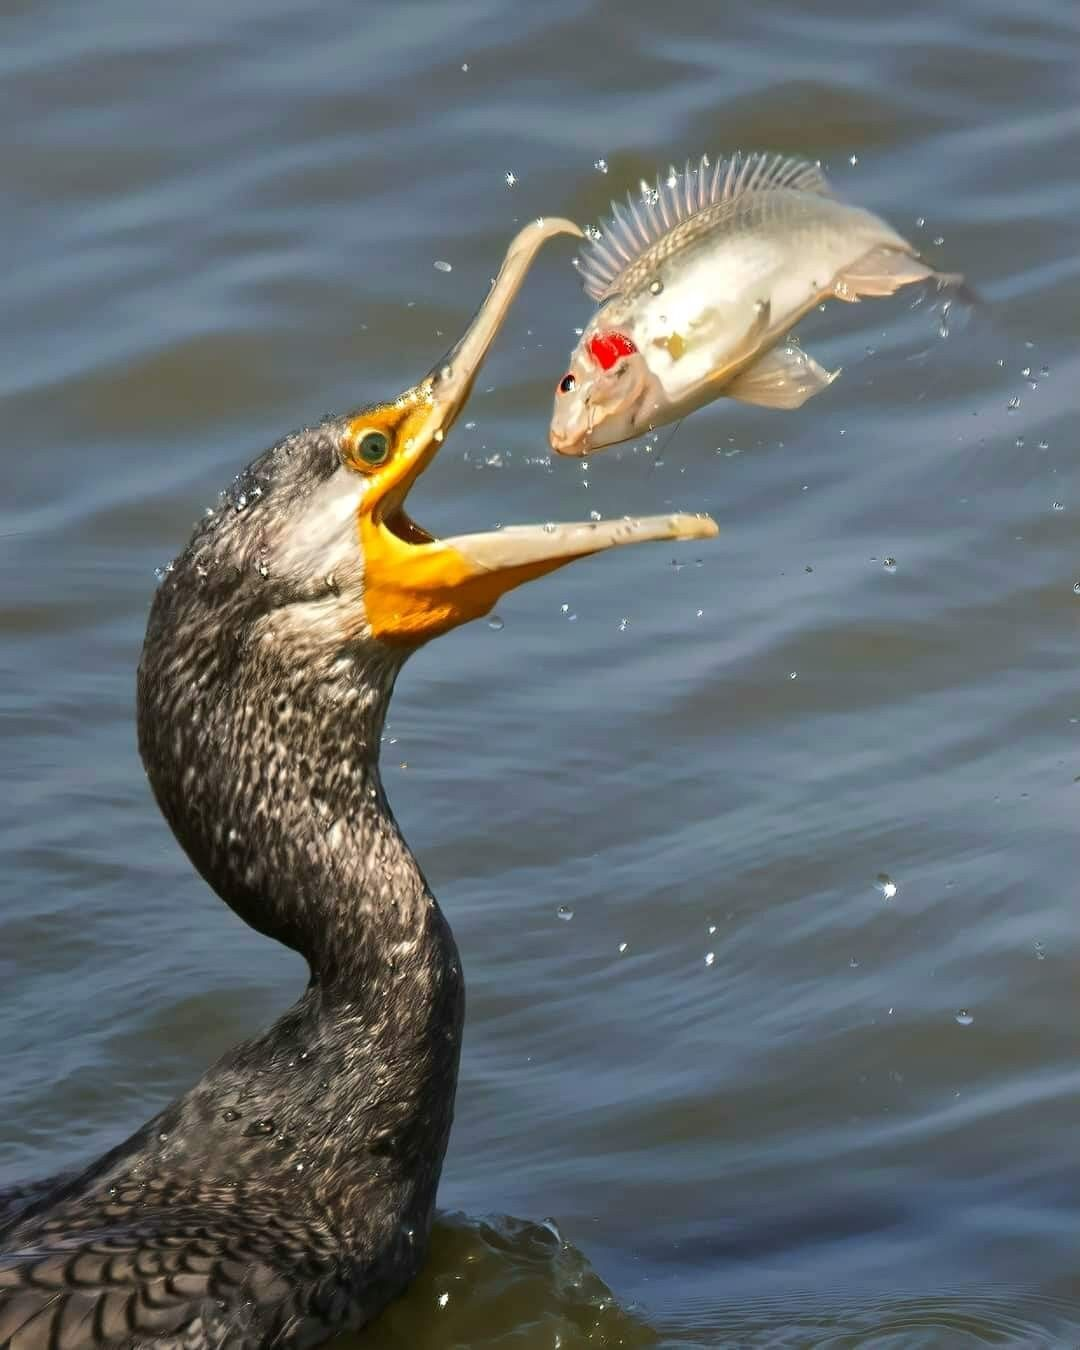 Cormorants are very skillful hunters. They propel underwater with their feet and can go as deep as 15-30mtrs underwater in search of fish.    #cormorants #fish #hunters #natgeoyourshot #nature #wilderness #wild #wildlife #bird #birds #amazing   📷@brush_str0kes